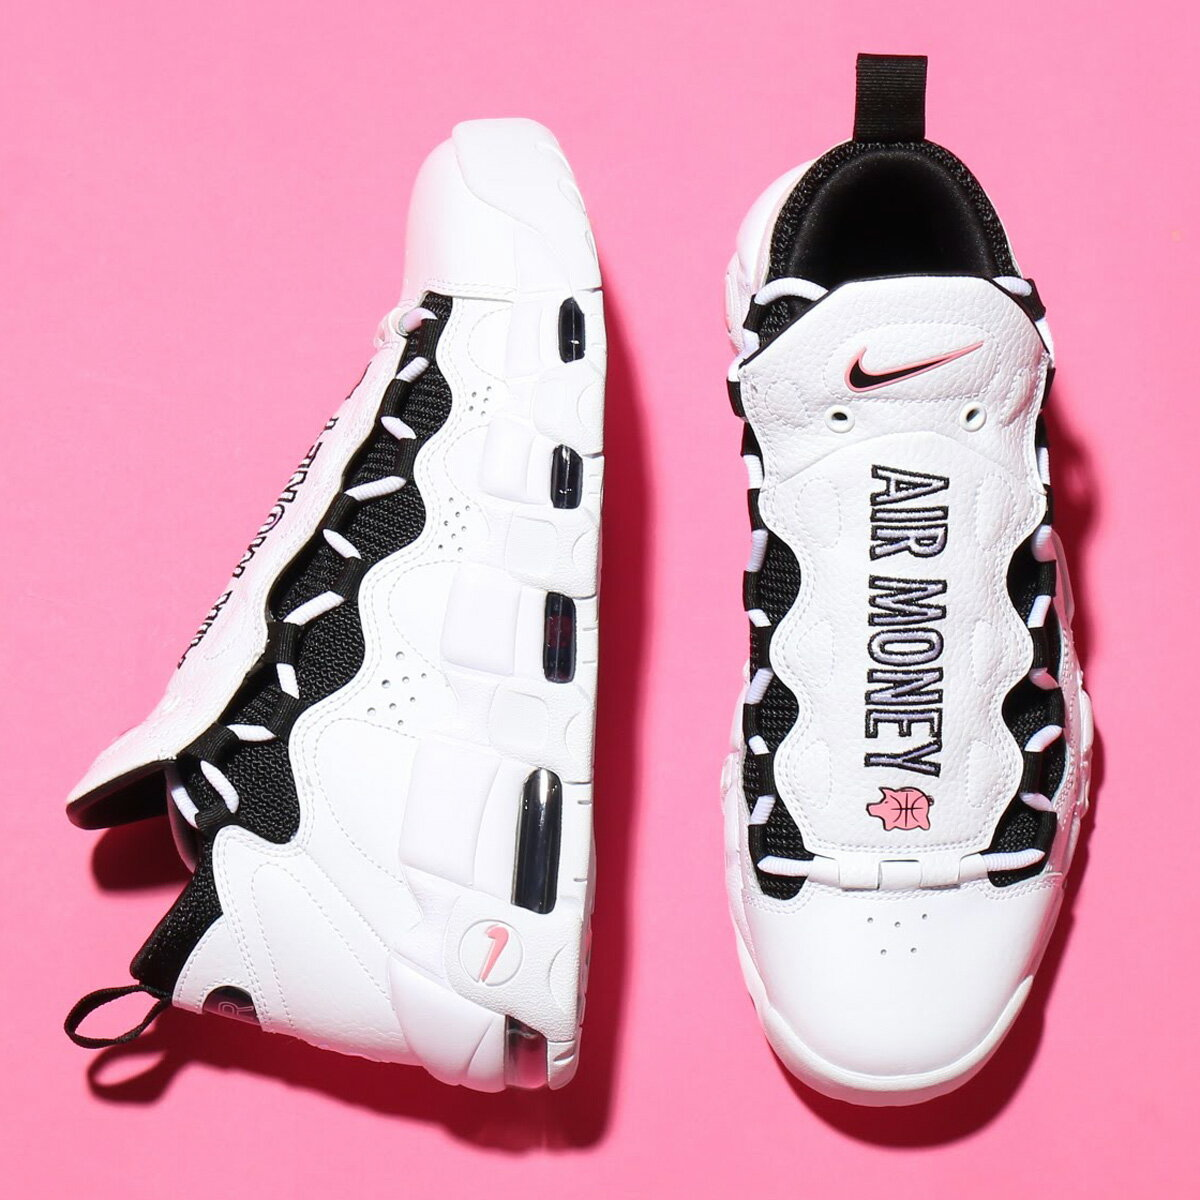 NIKE AIR MORE MONEY (ナイキ エア モア マネー) WHITE/BLACK-CORAL CHALK-WHITE【メンズ スニーカー】18SU-S